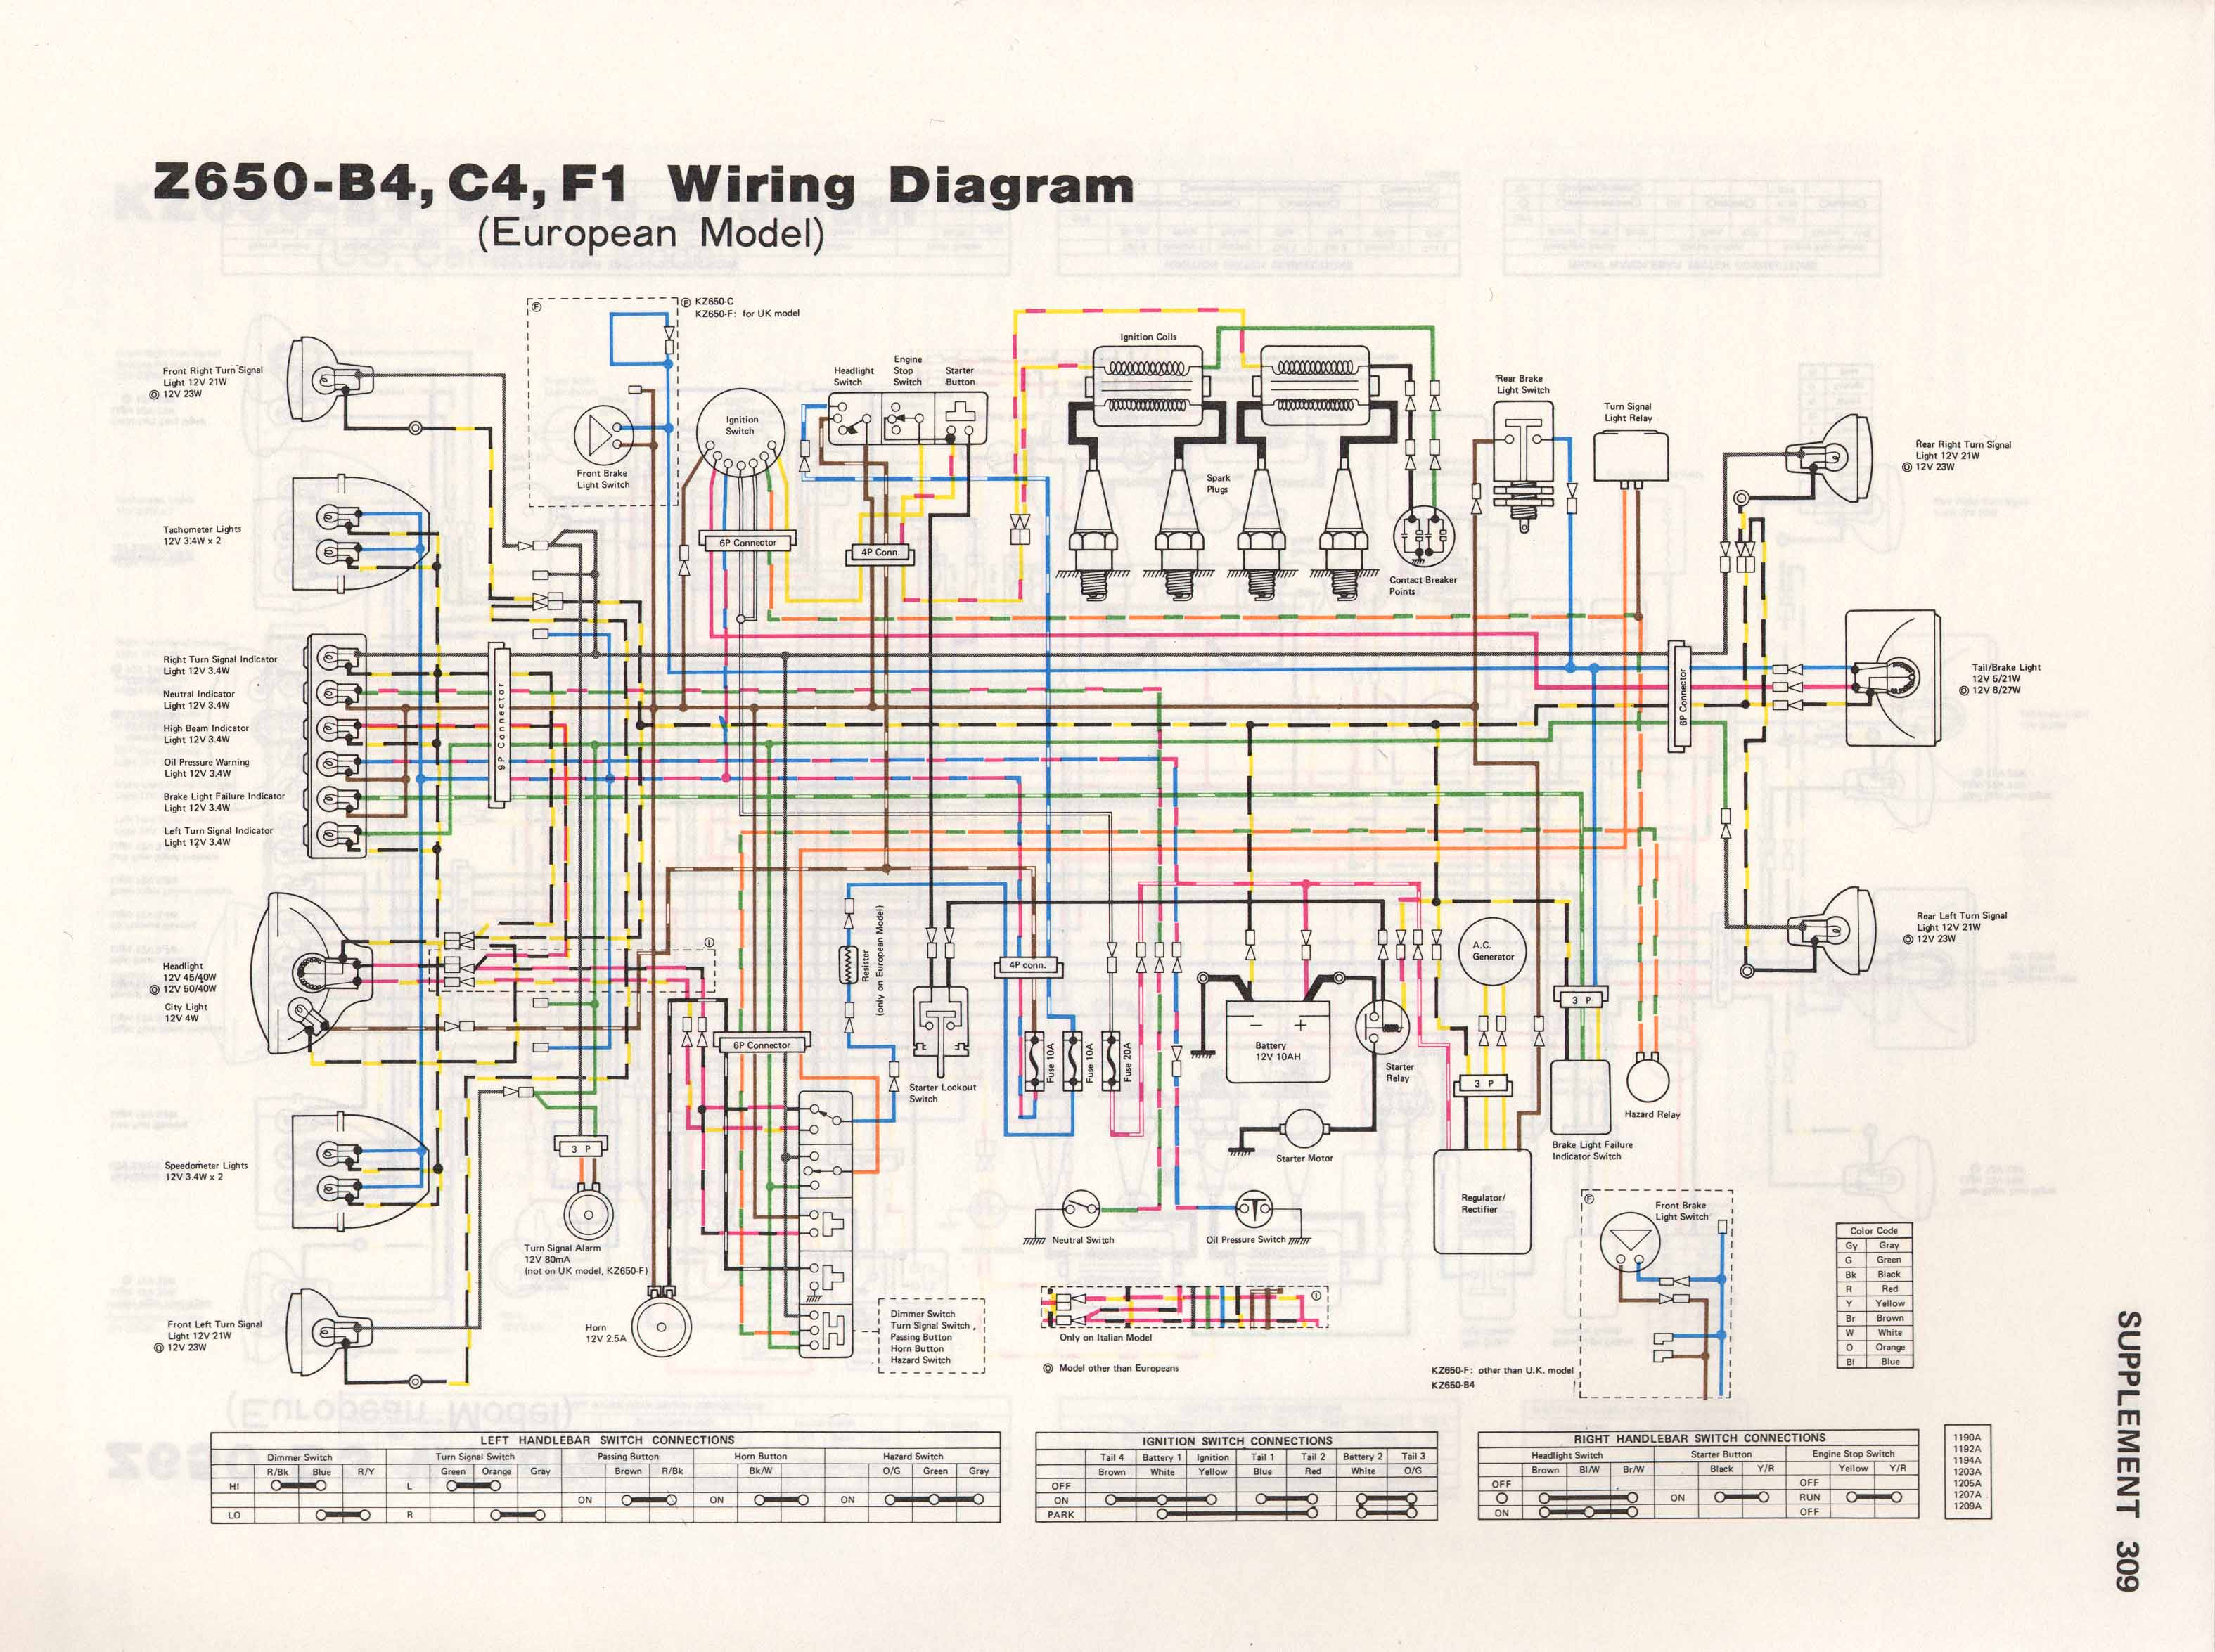 1977 kz650 wiring diagram 80 kz650 wiring diagram kz650.info